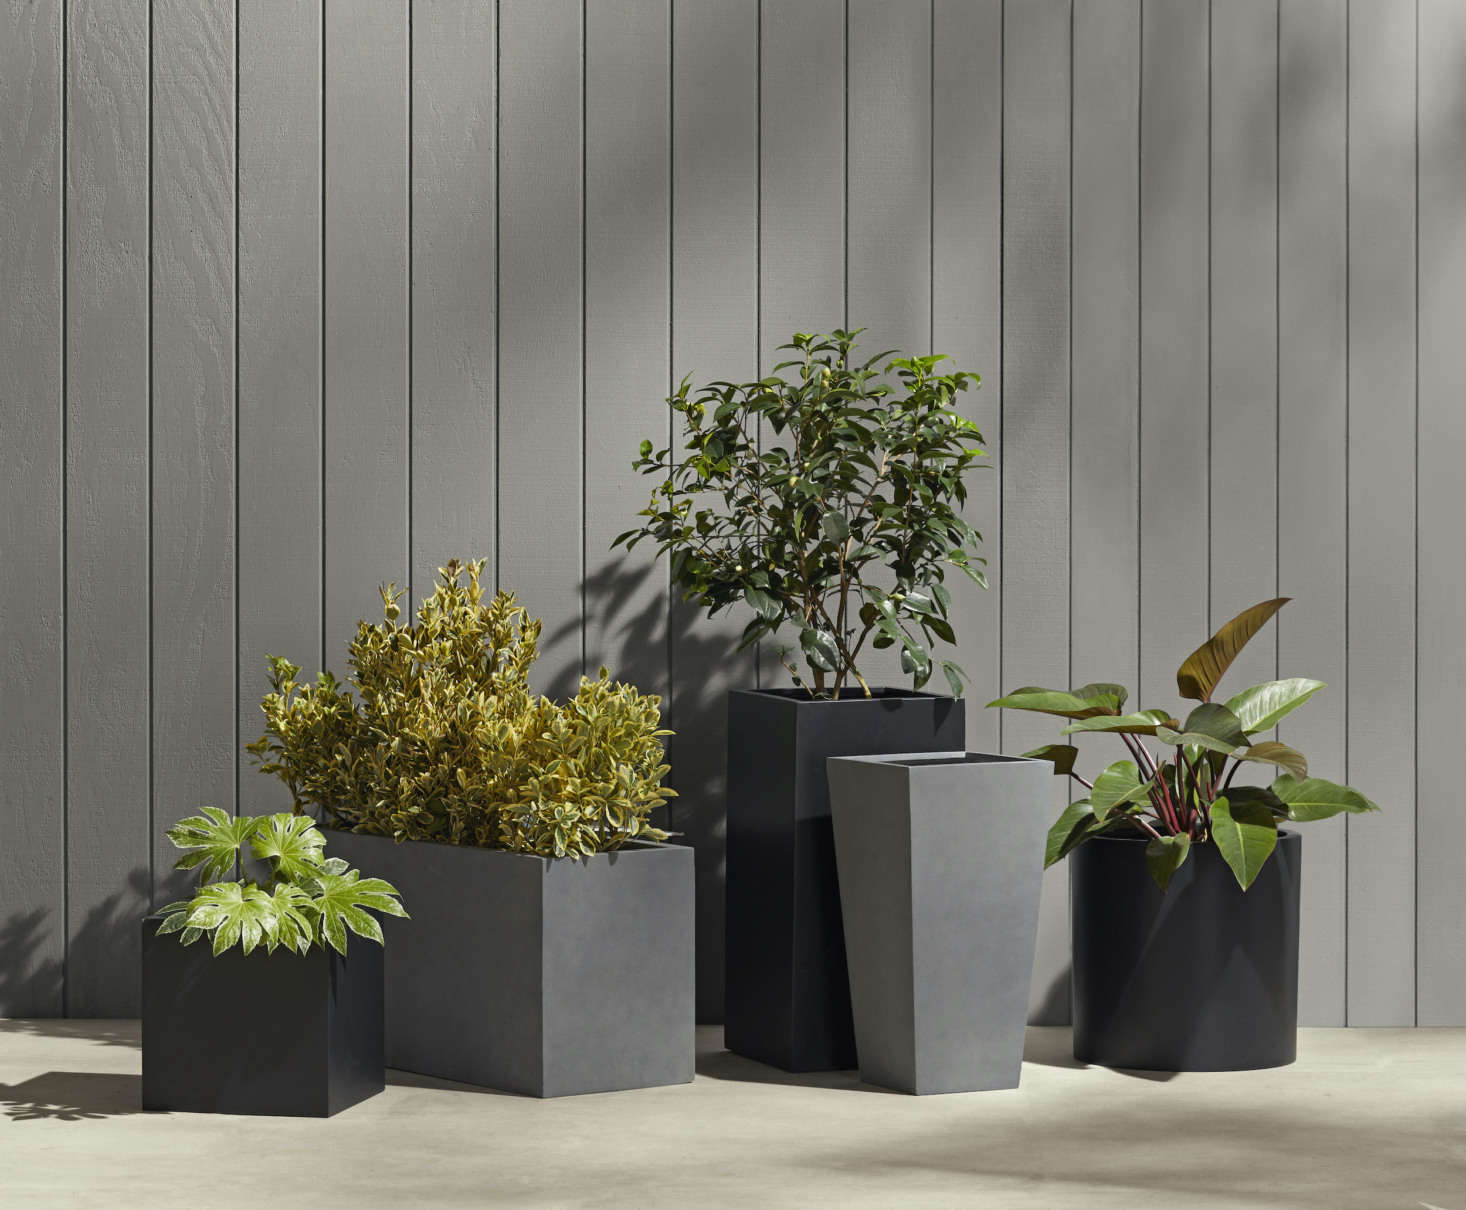 """These industrial-style planters only look metal—but they're actually made of lightweight, frost-proof fiberstone composite. They're available in black or grey as well as a variety of sizes and shapes; we like the Modern Fiberstone Square Planter ($9; far left) and the long, low Modern Fiberstone Rectangle Planter ($9; second from left) for separating outdoor """"rooms"""" on a patio."""